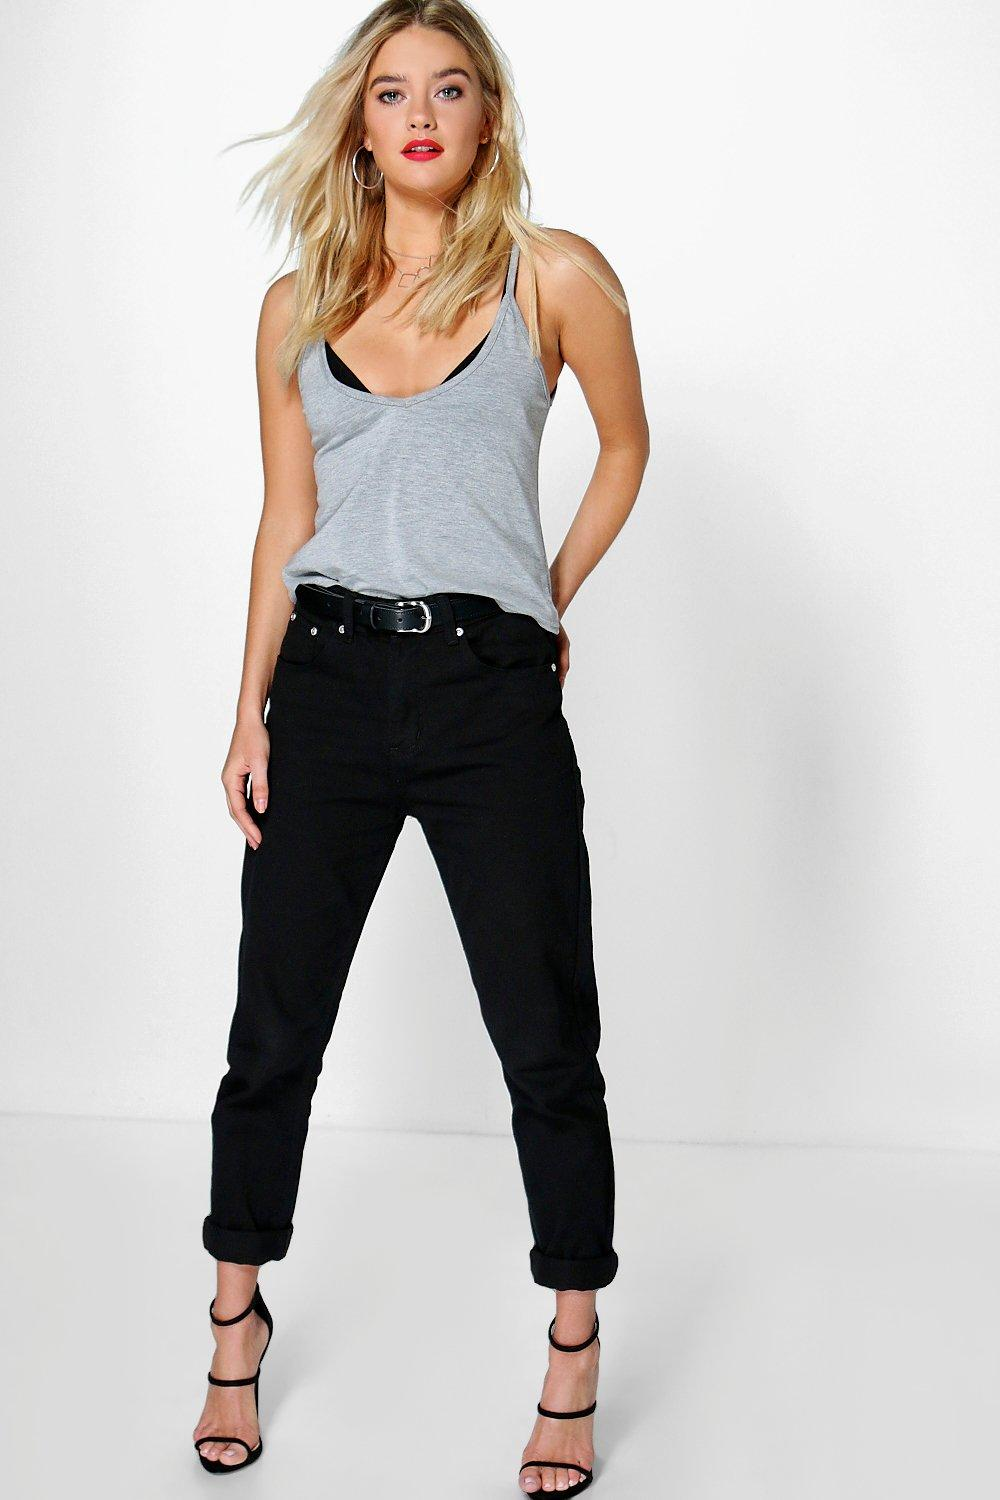 Hatty High Waisted Black Boyfriend Jeans | Boohoo